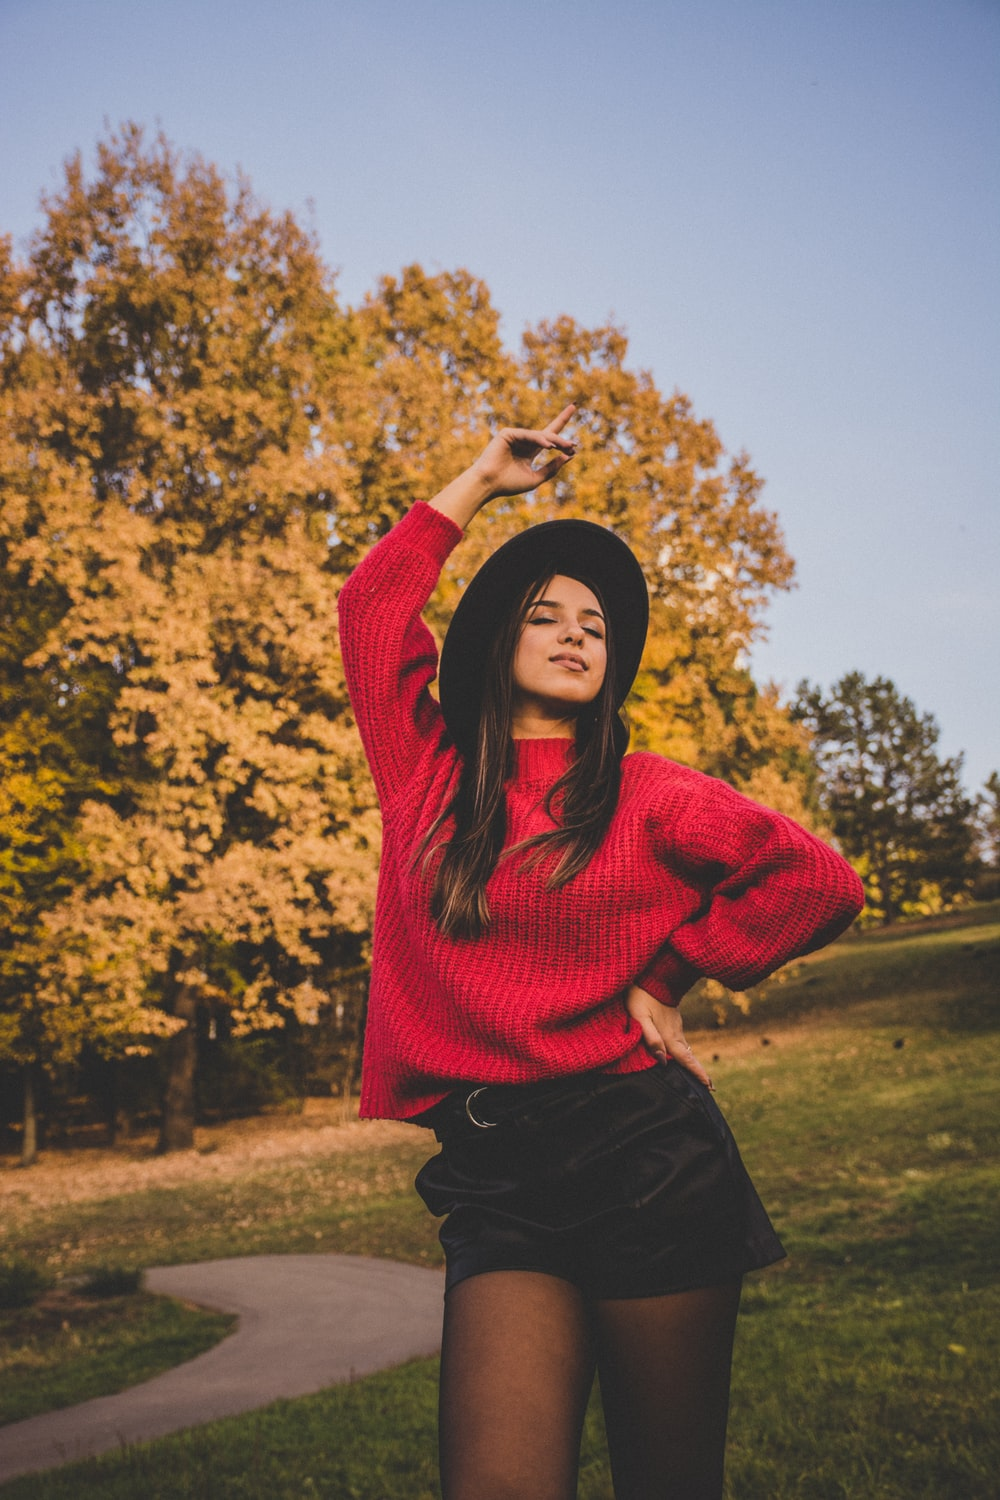 woman in red sweater standing on grass near trees during daytime